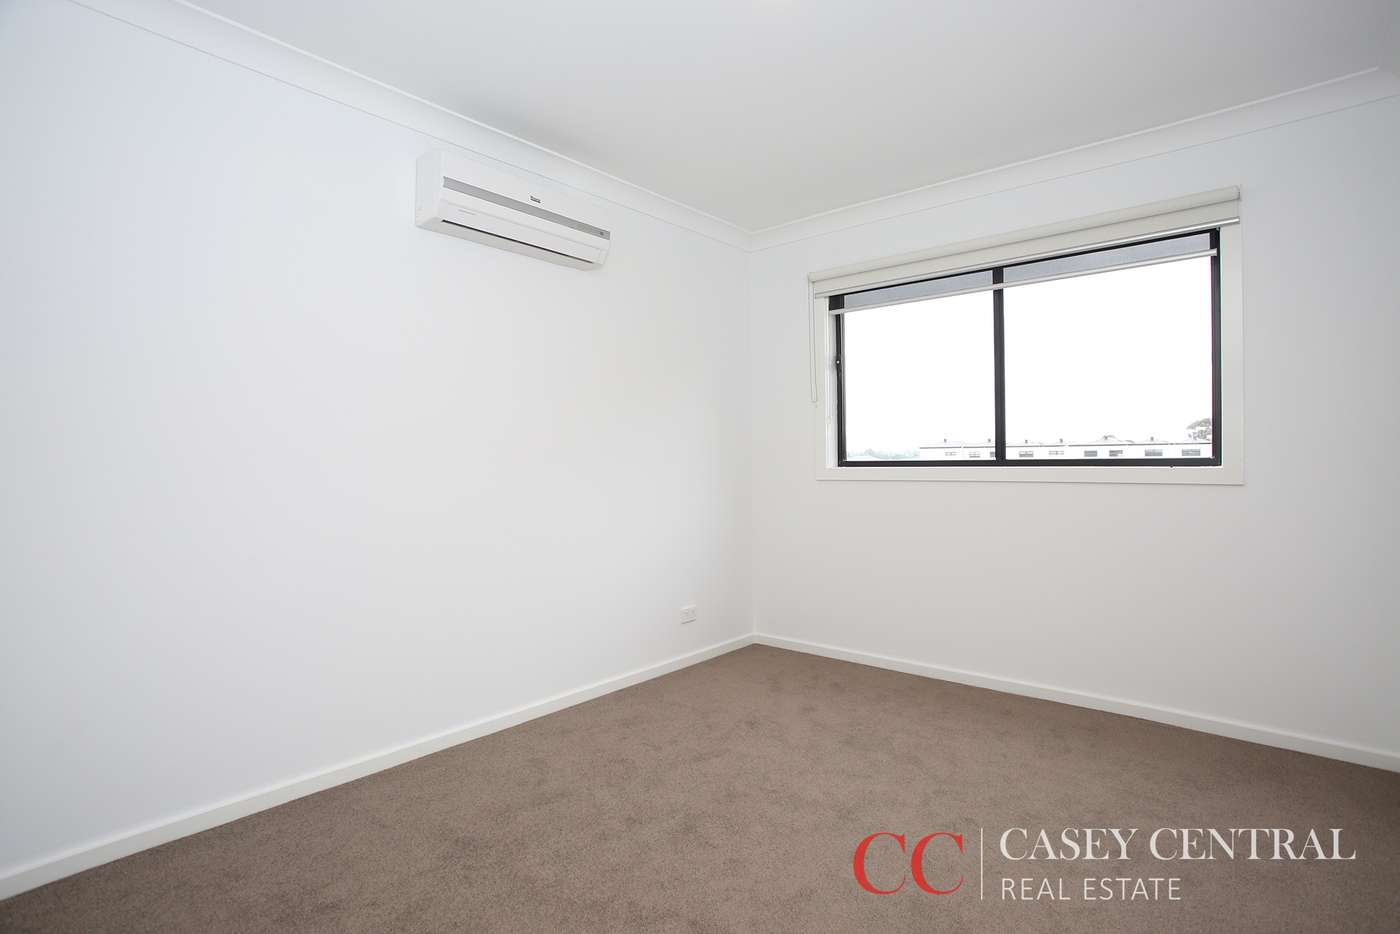 Seventh view of Homely house listing, 21 Station Street, Pakenham VIC 3810